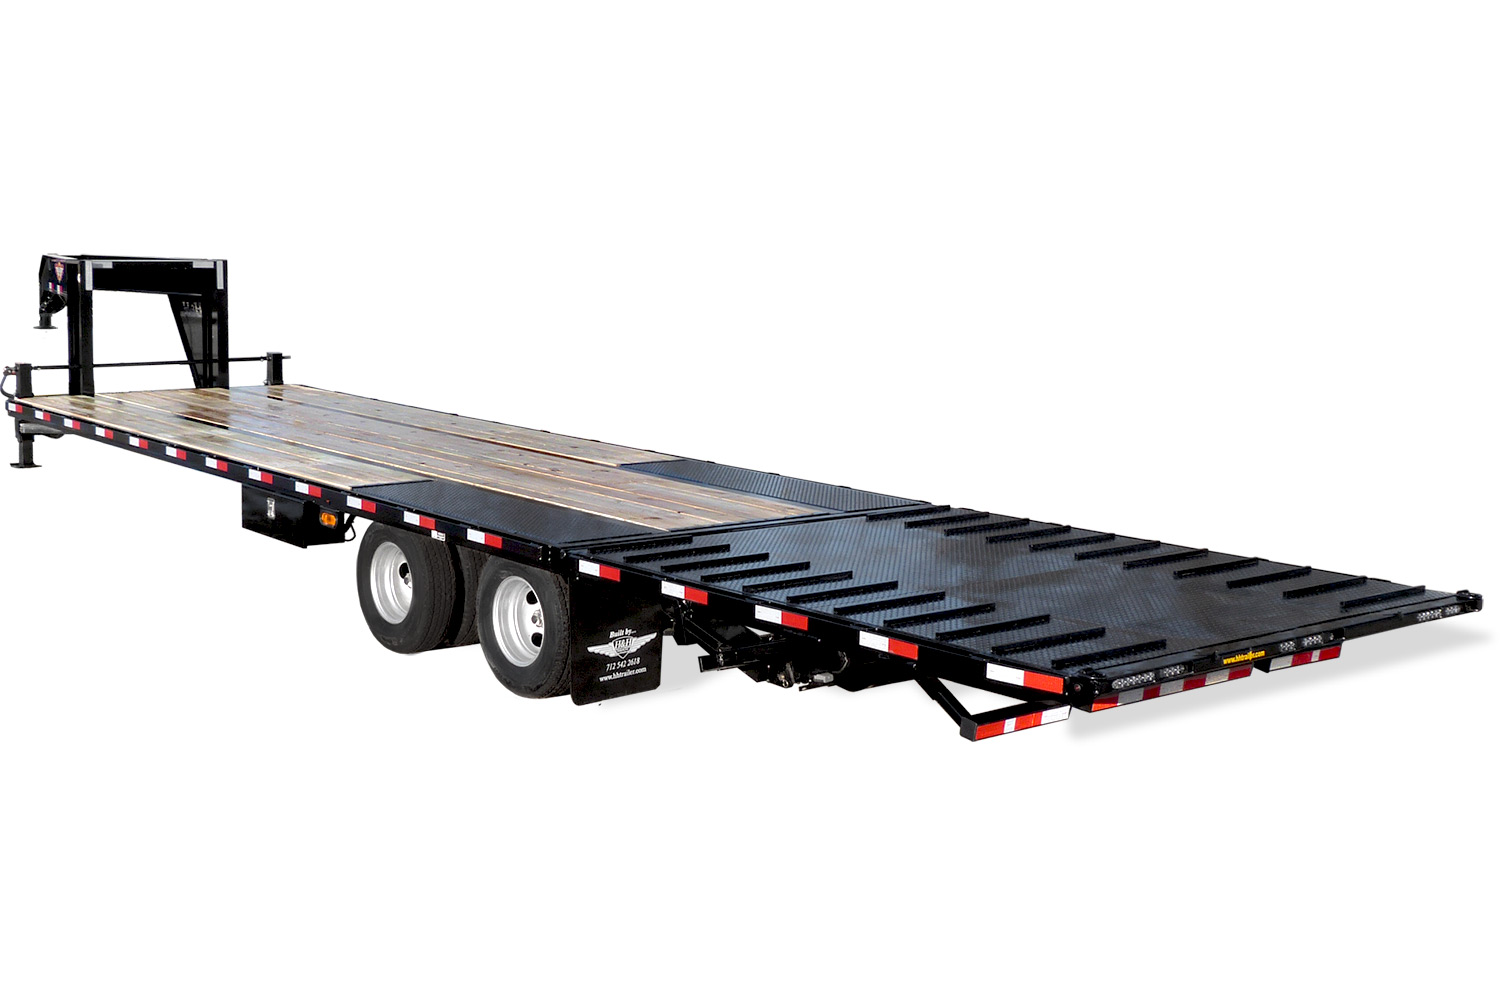 2020 H and H Trailer 25+5 19LB 21K 3A GNLP DECKOVER SUPER DLX